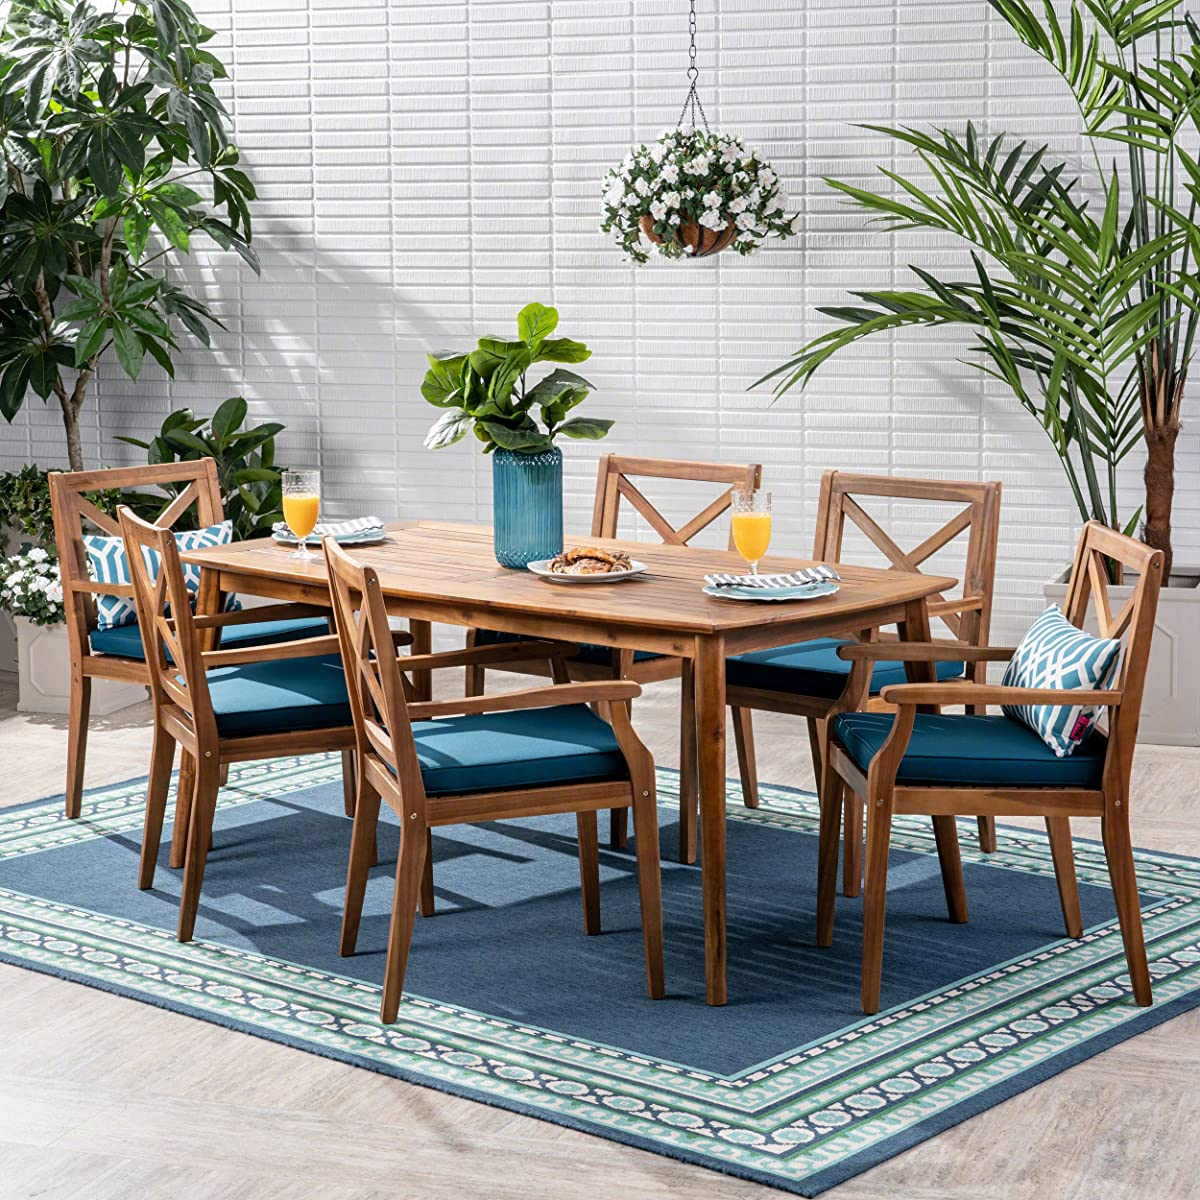 Great Deal Furniture Harvey Outdoor 7 Piece Acacia Wood Dining Set, Teak and Blue